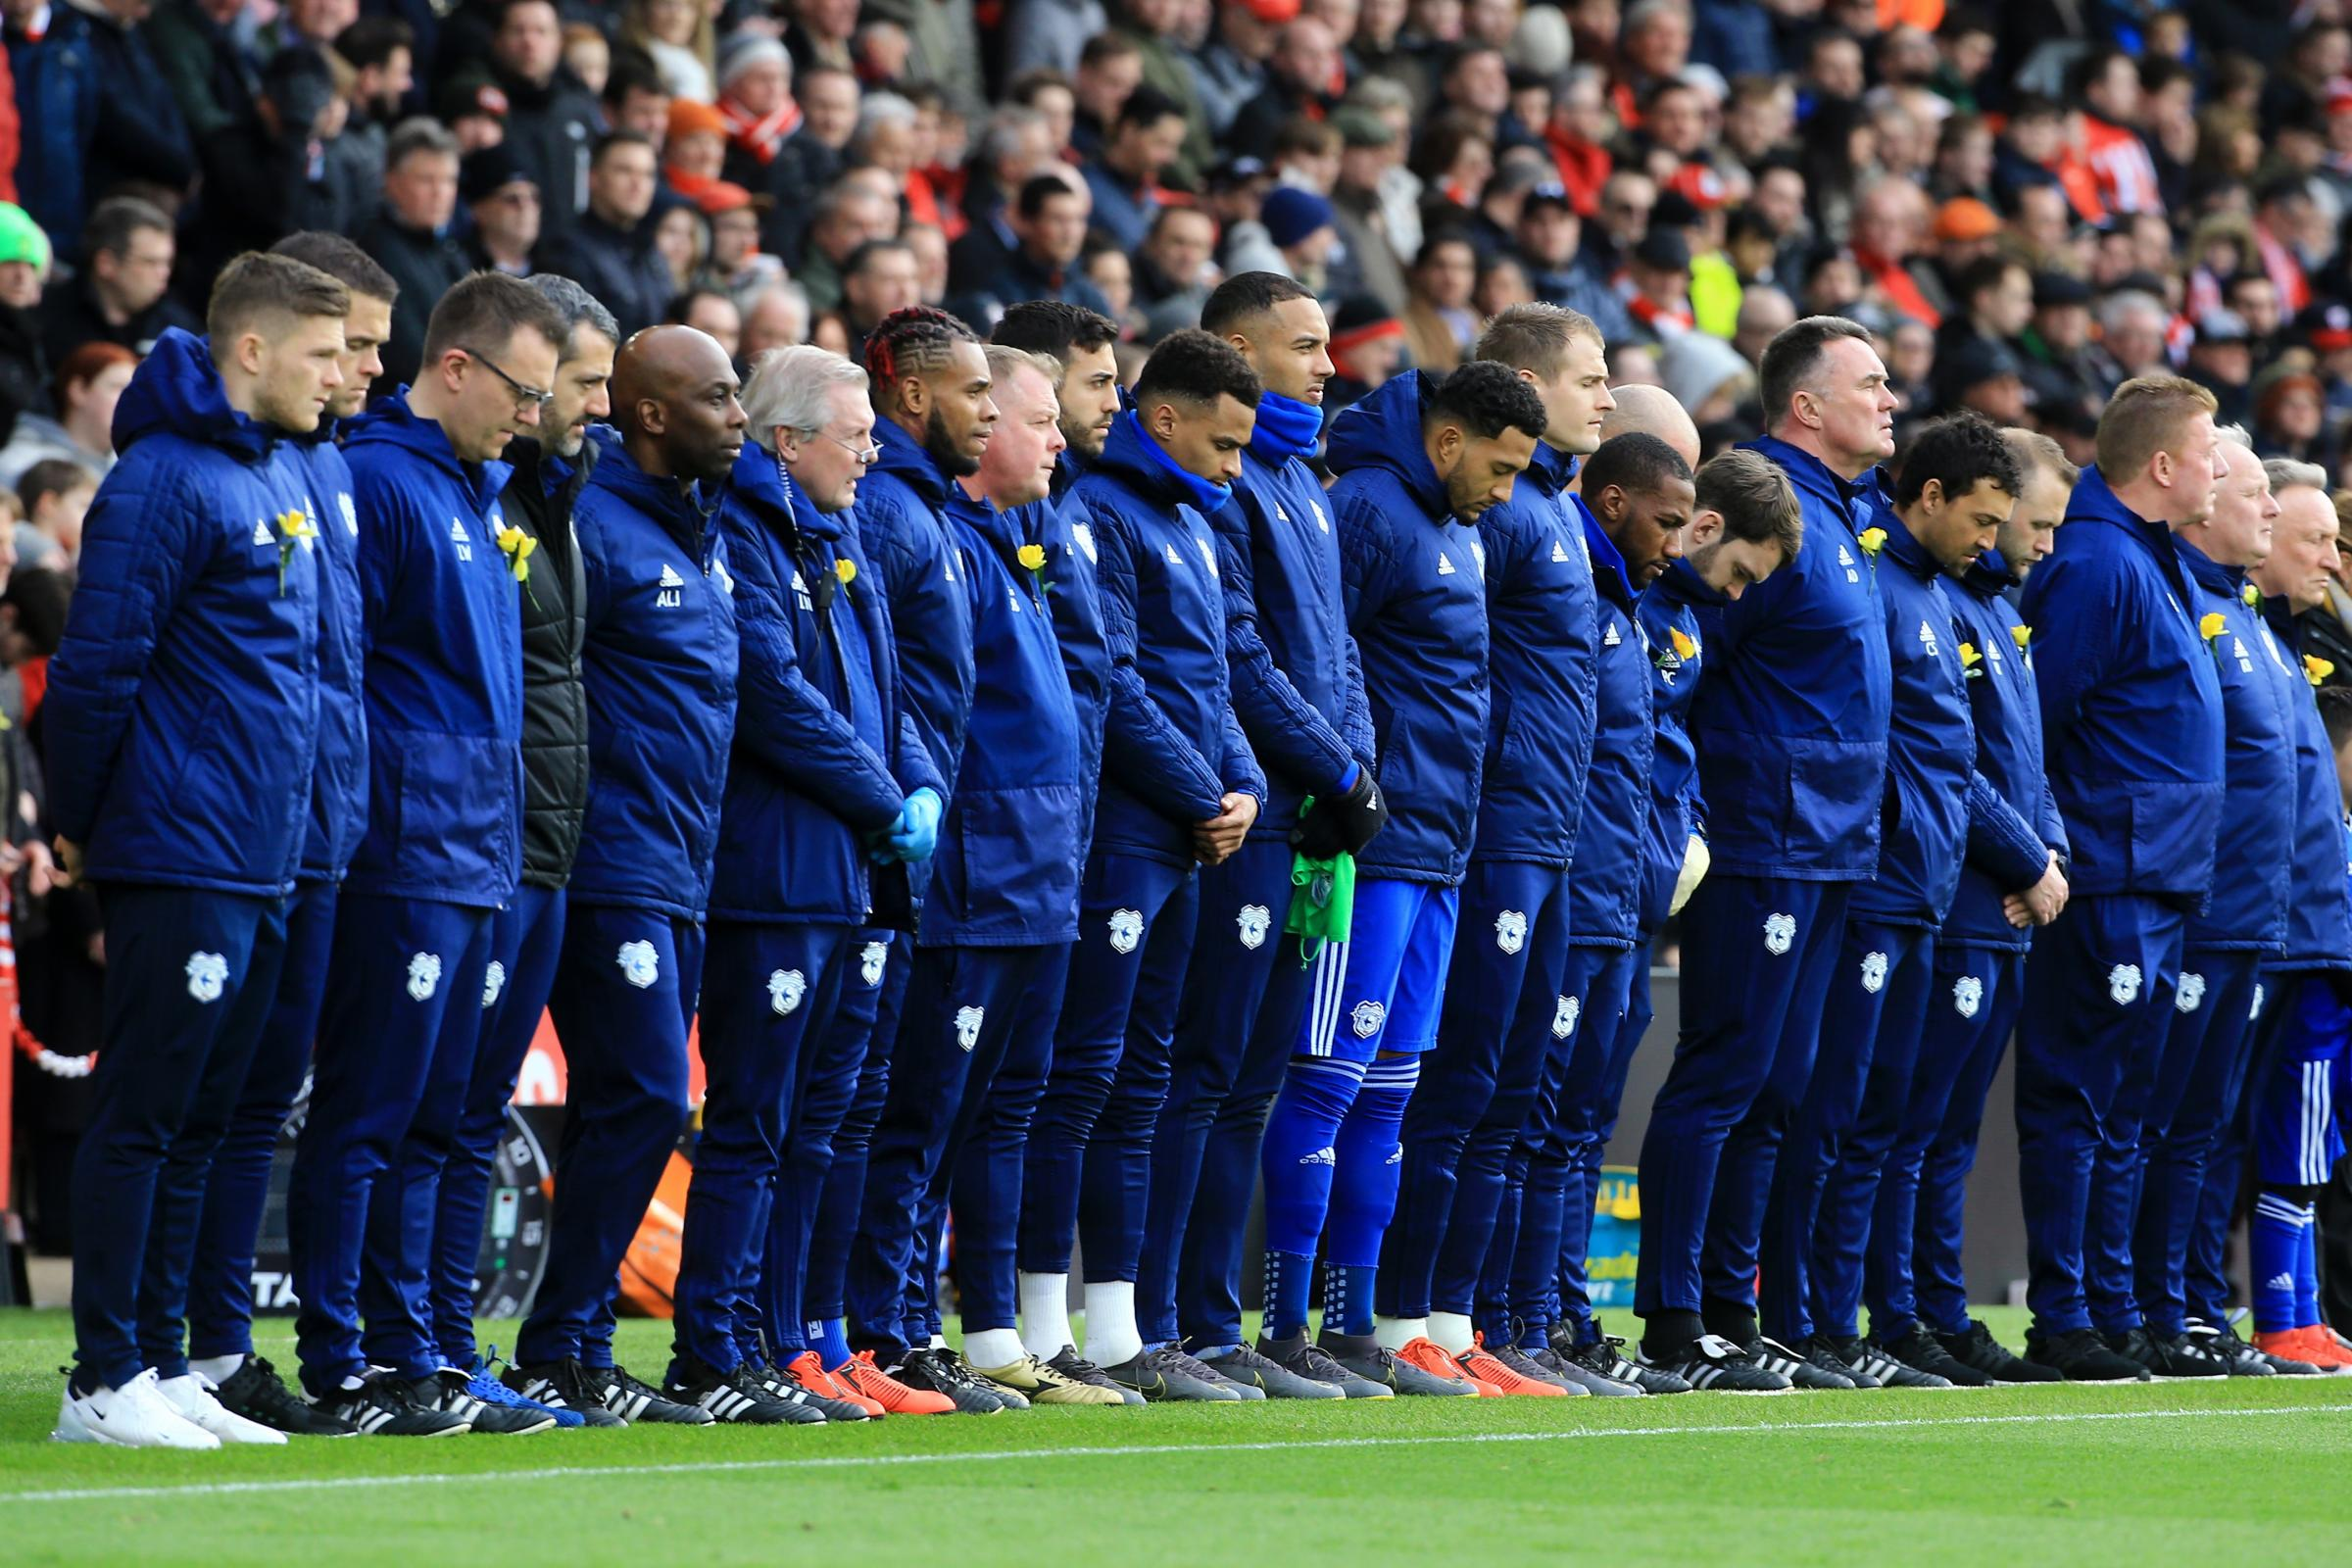 Cardiff's players and staff will no longer take a mid-season break and instead take time to reflect on the Emiliano Sala tragedy in private with their families